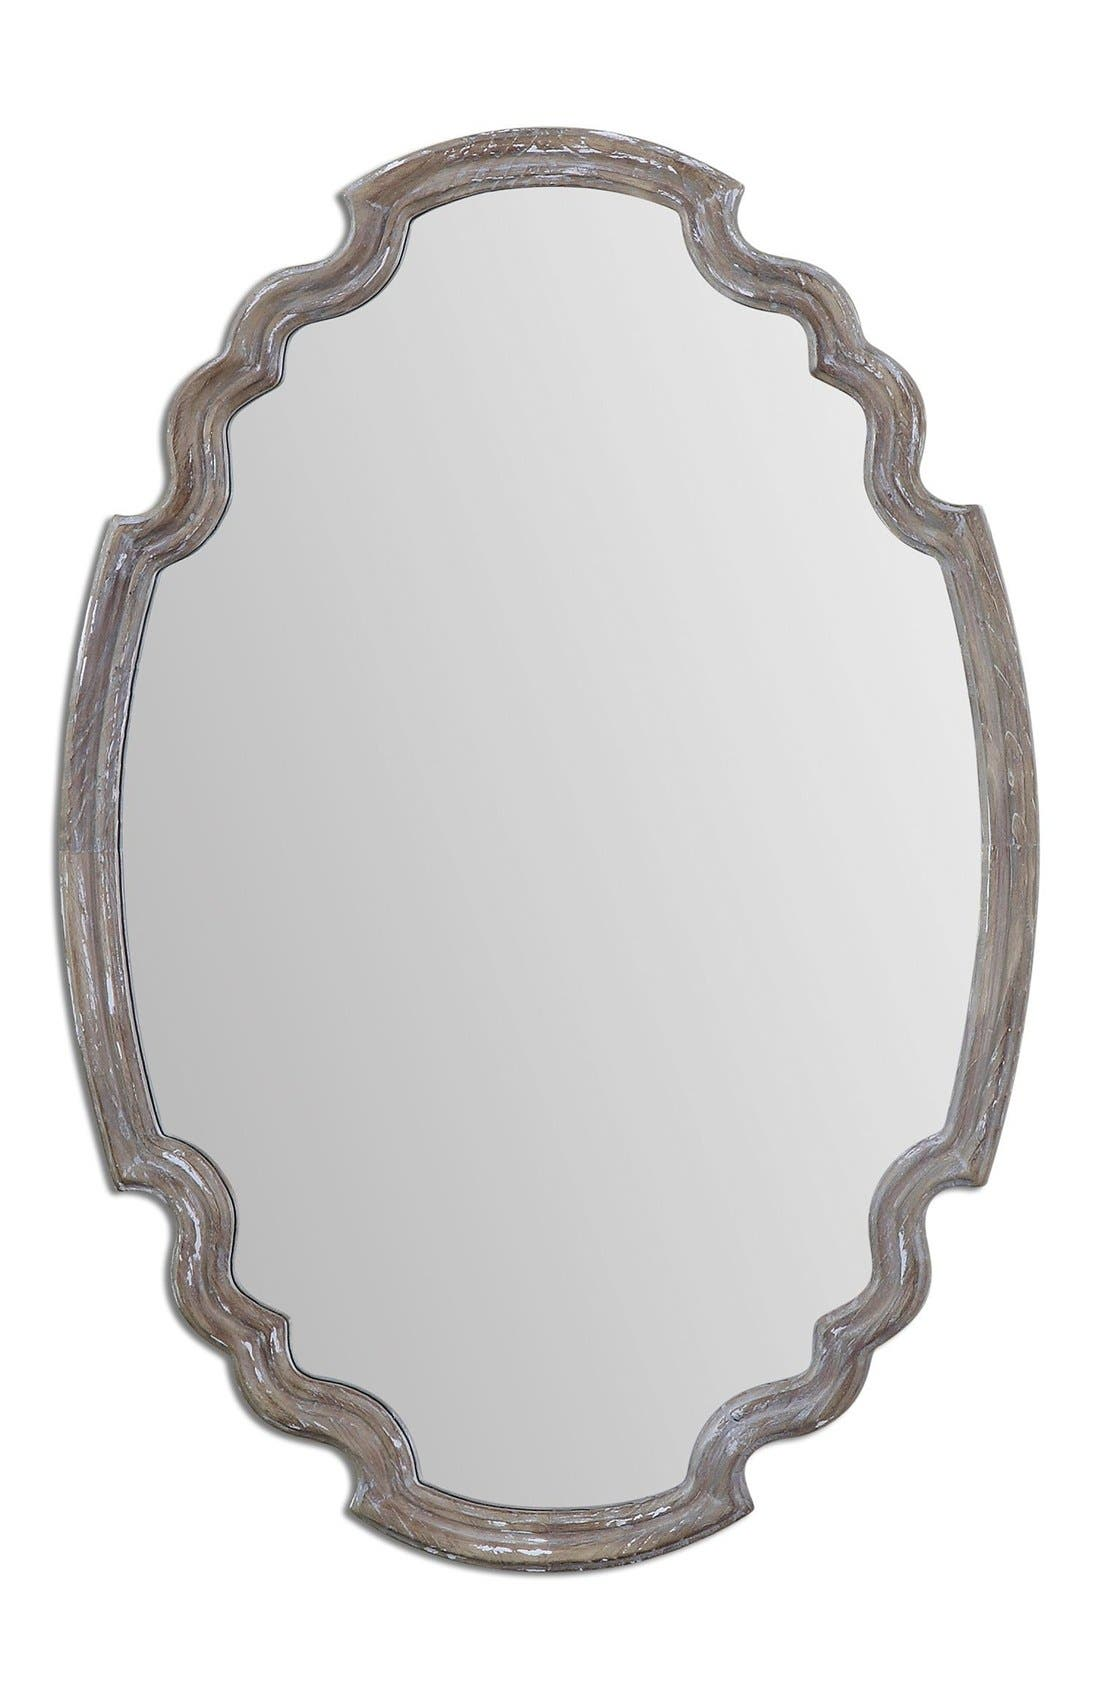 Alternate Image 1 Selected - Uttermost 'Ludovica' Aged Finish Oval Wall Mirror